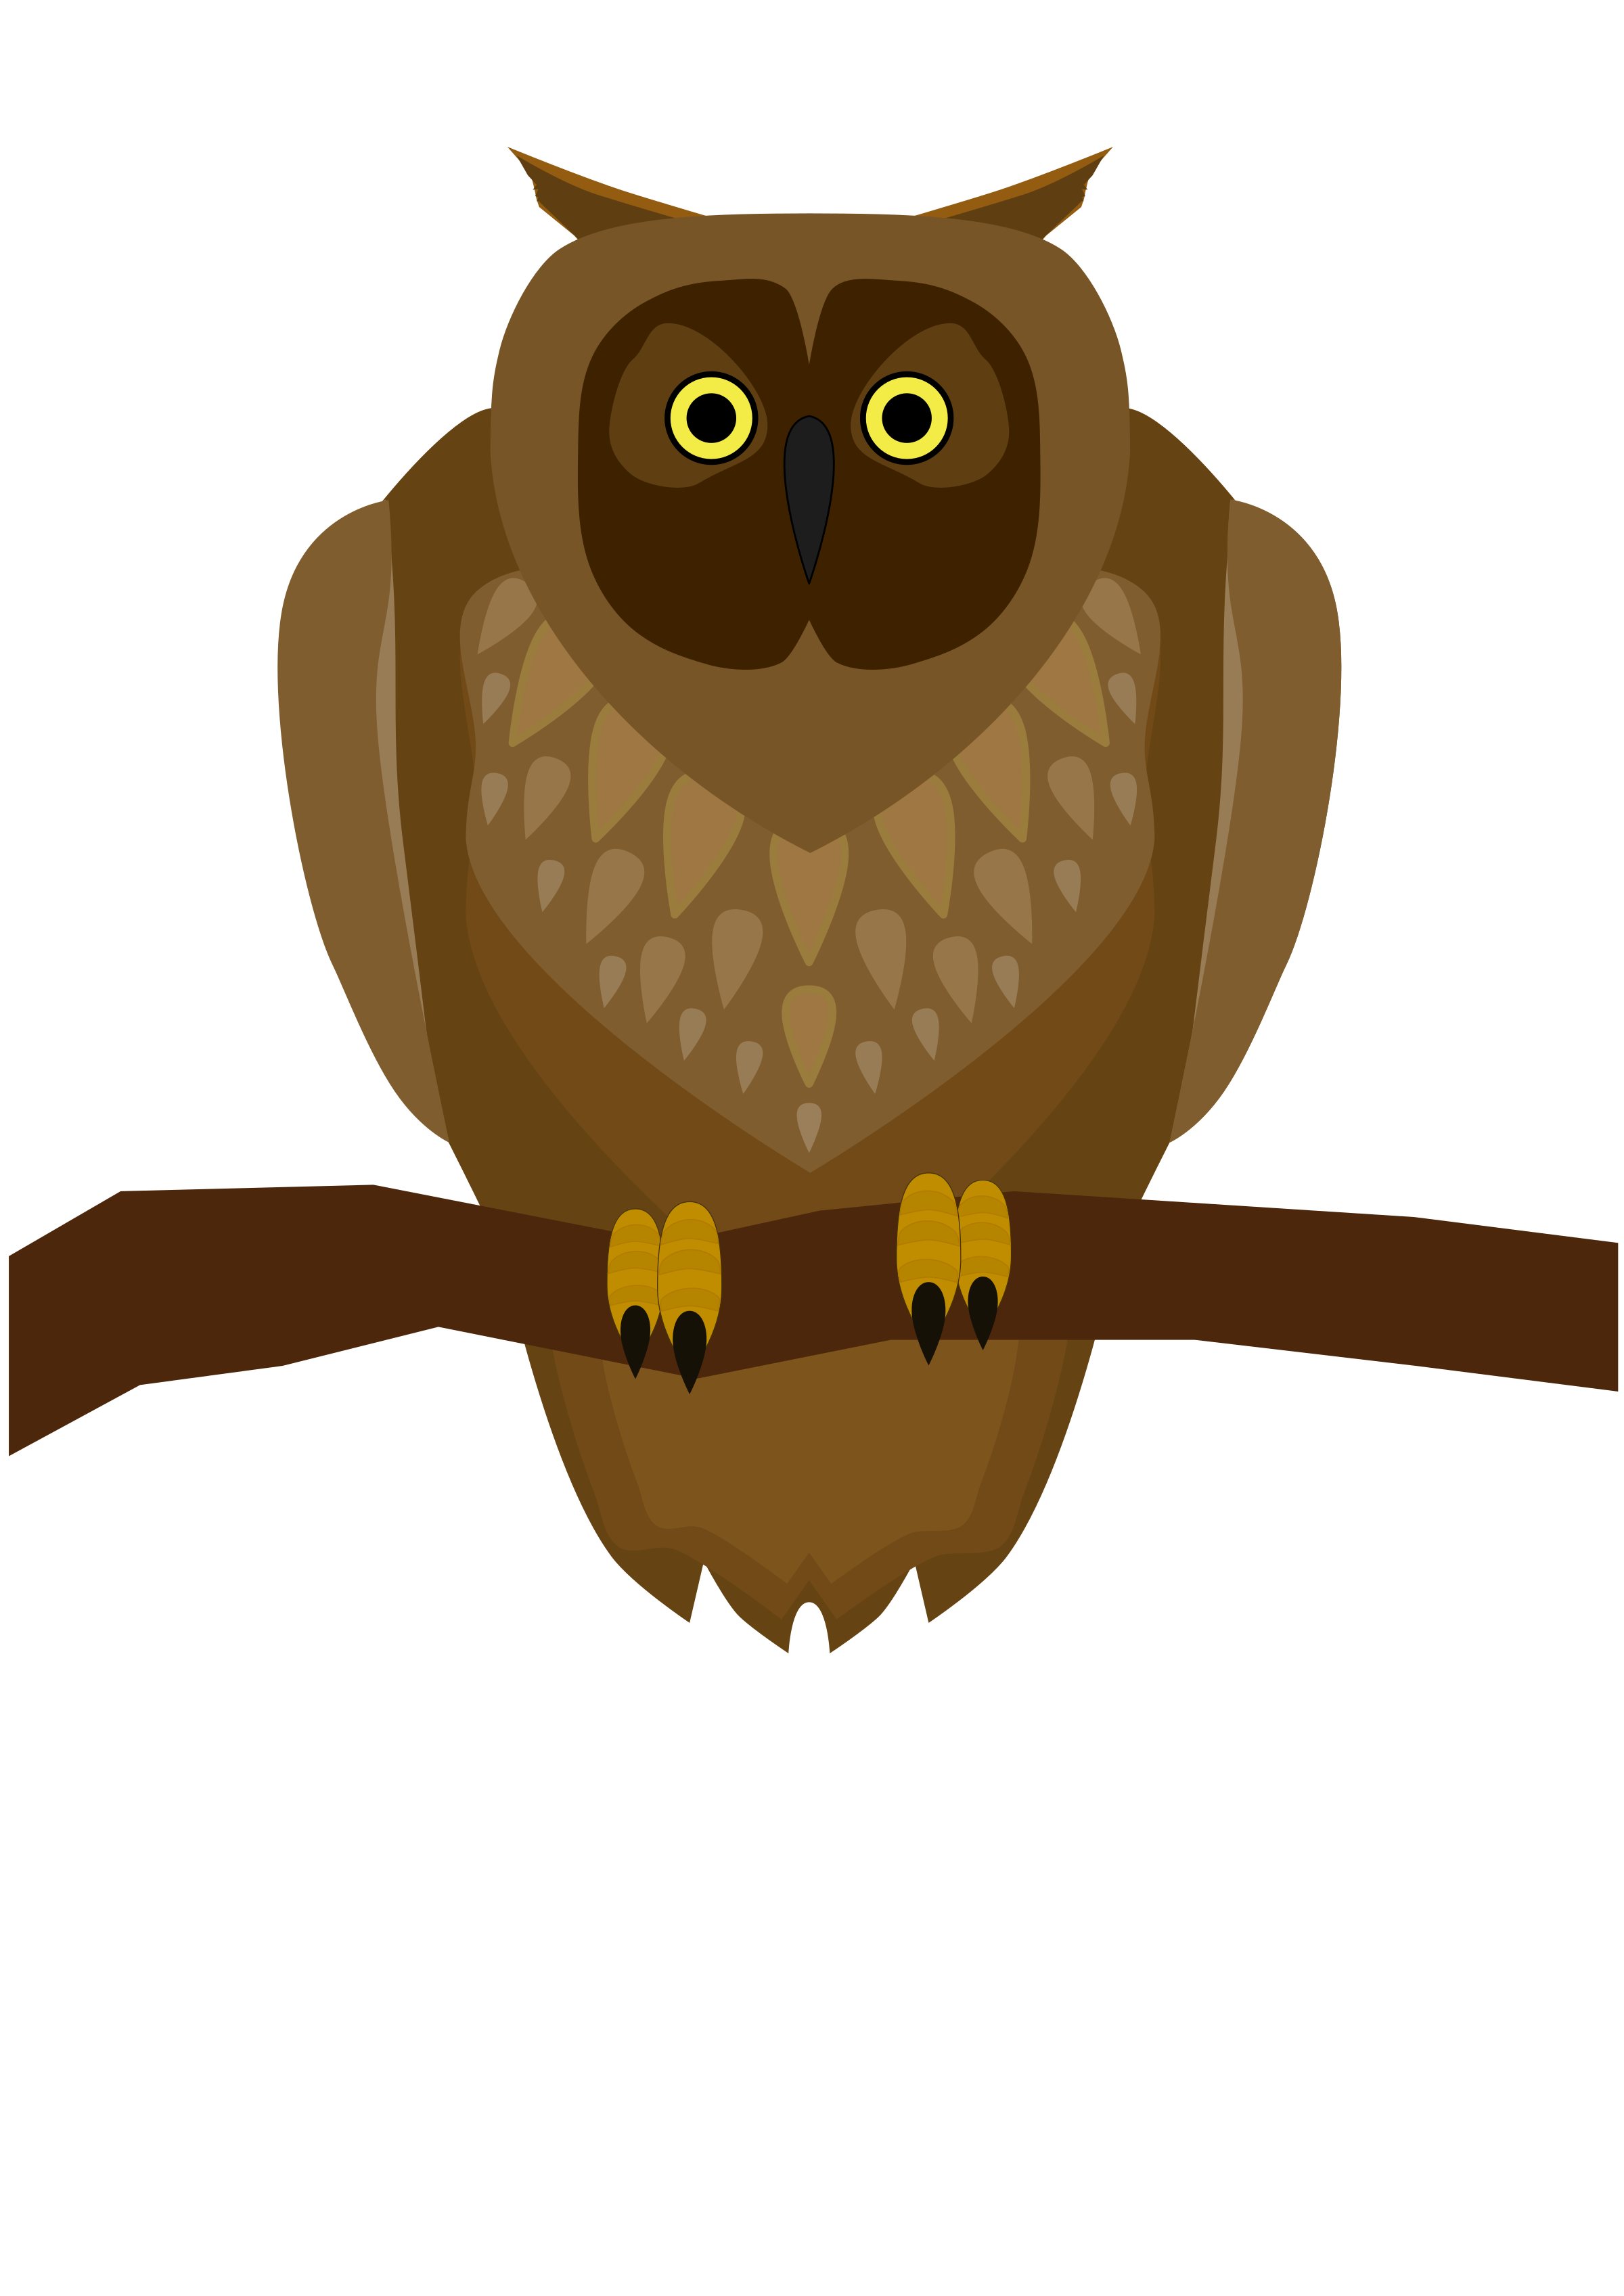 Owl by VoroN